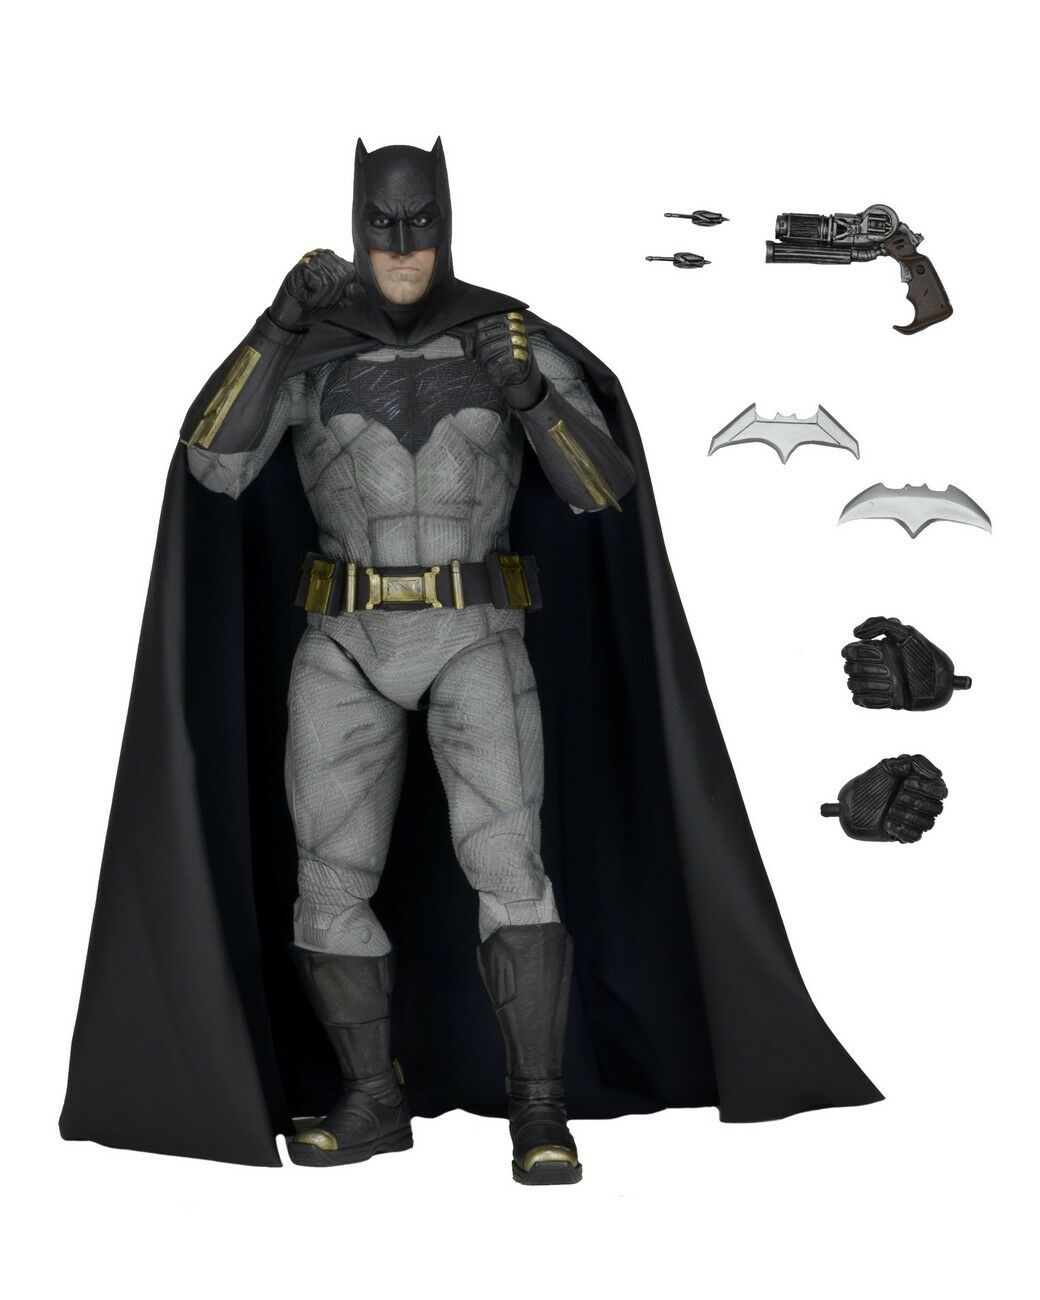 BAThomme vs SUPERhomme  Dawn of  Justice - 1 4 Scale Bathomme Action Figure (NECA)  nouveau  à vendre en ligne